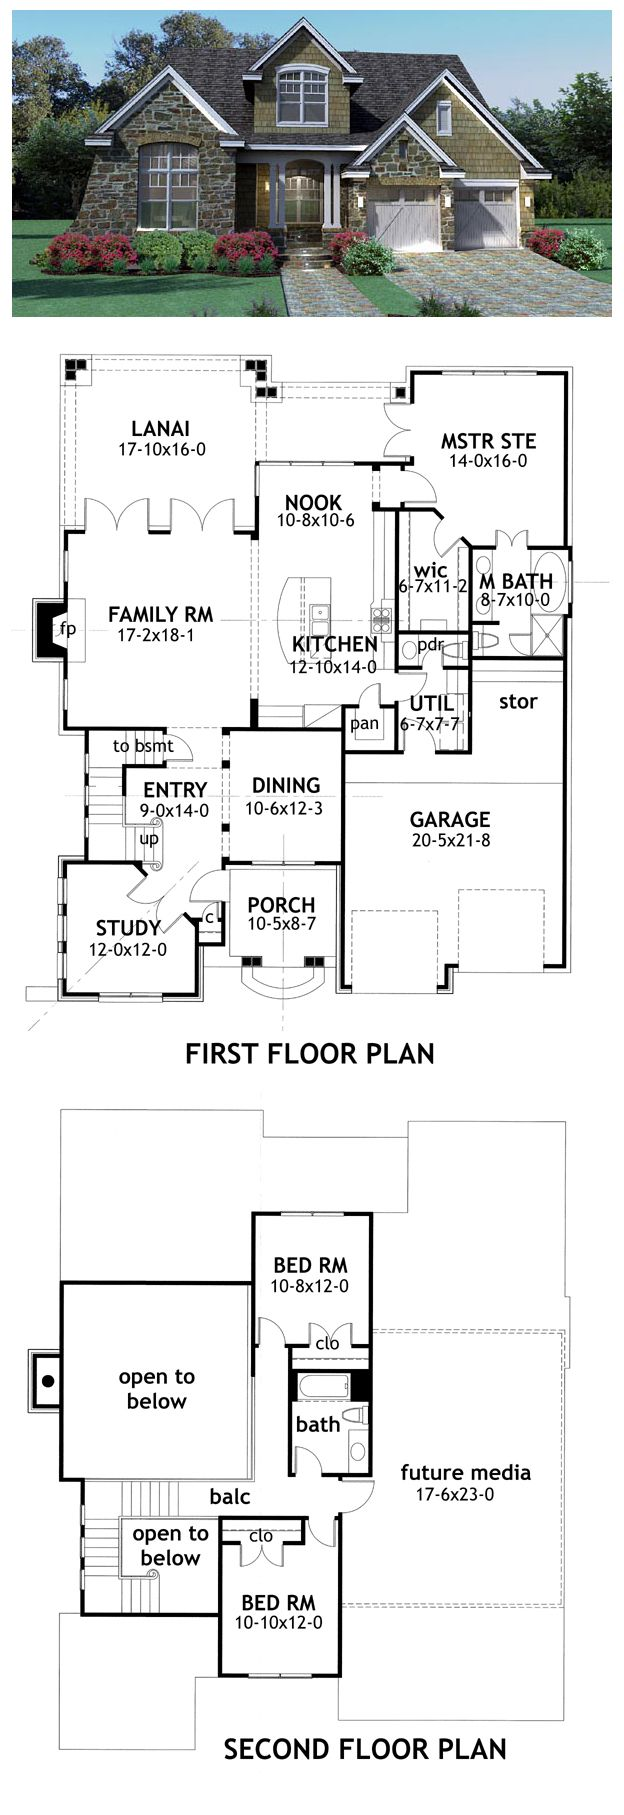 #BestSelling #HousePlan 65868 has 2143 sq ft of living space, 3 bedrooms and 2.5 bathrooms. Main floor: study, dining room, kitchen, nook, family room, utility room and master suite. Upstairs: 2 bedrooms and bathroom